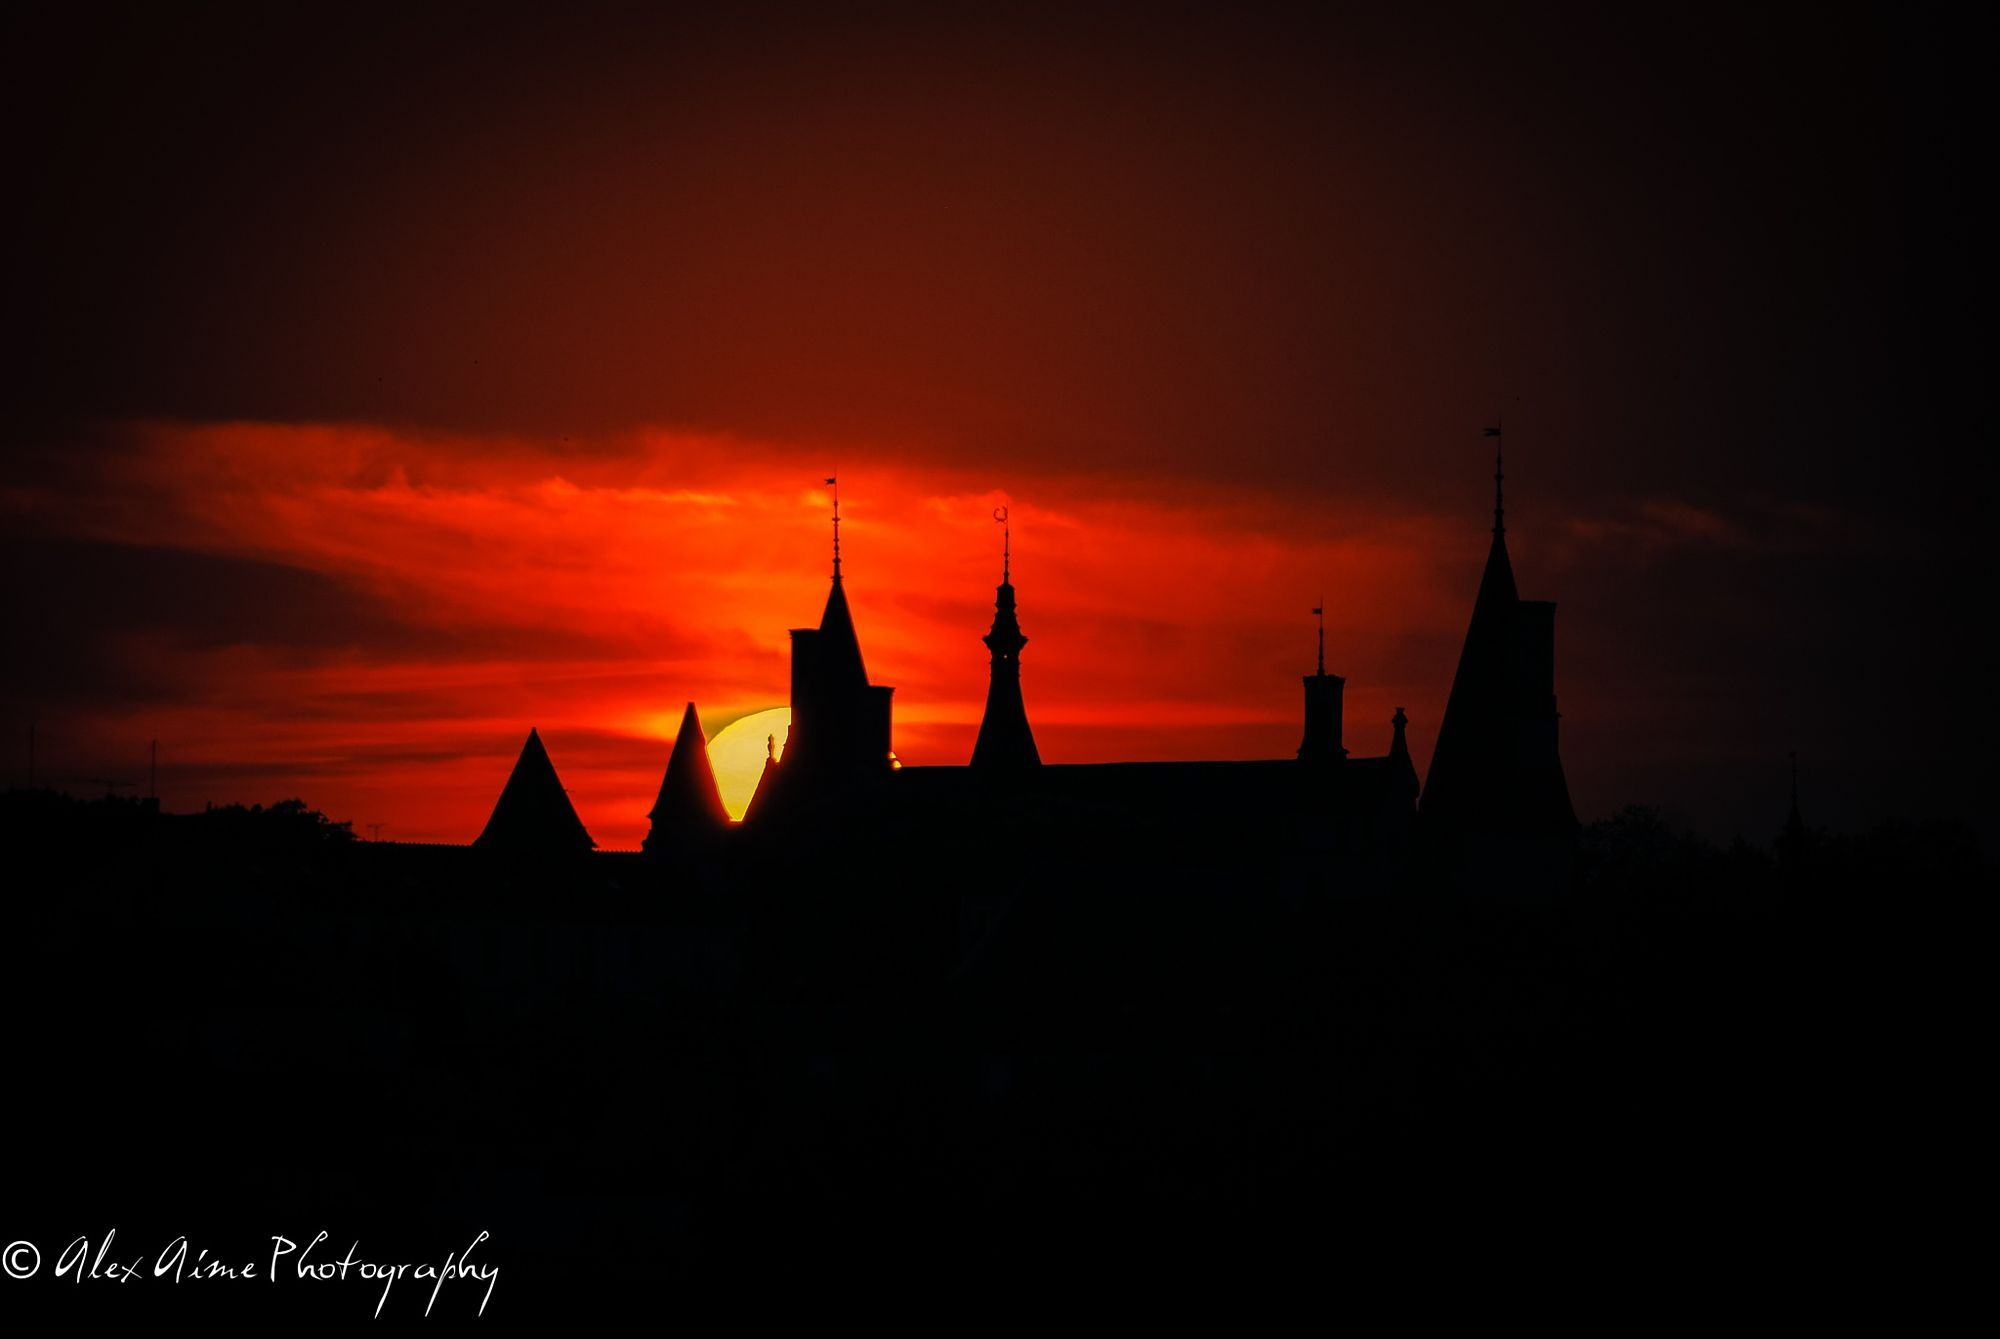 Sun and silhouette  City and architecture photo by AlexAimephotography http://rarme.com/?F9gZi